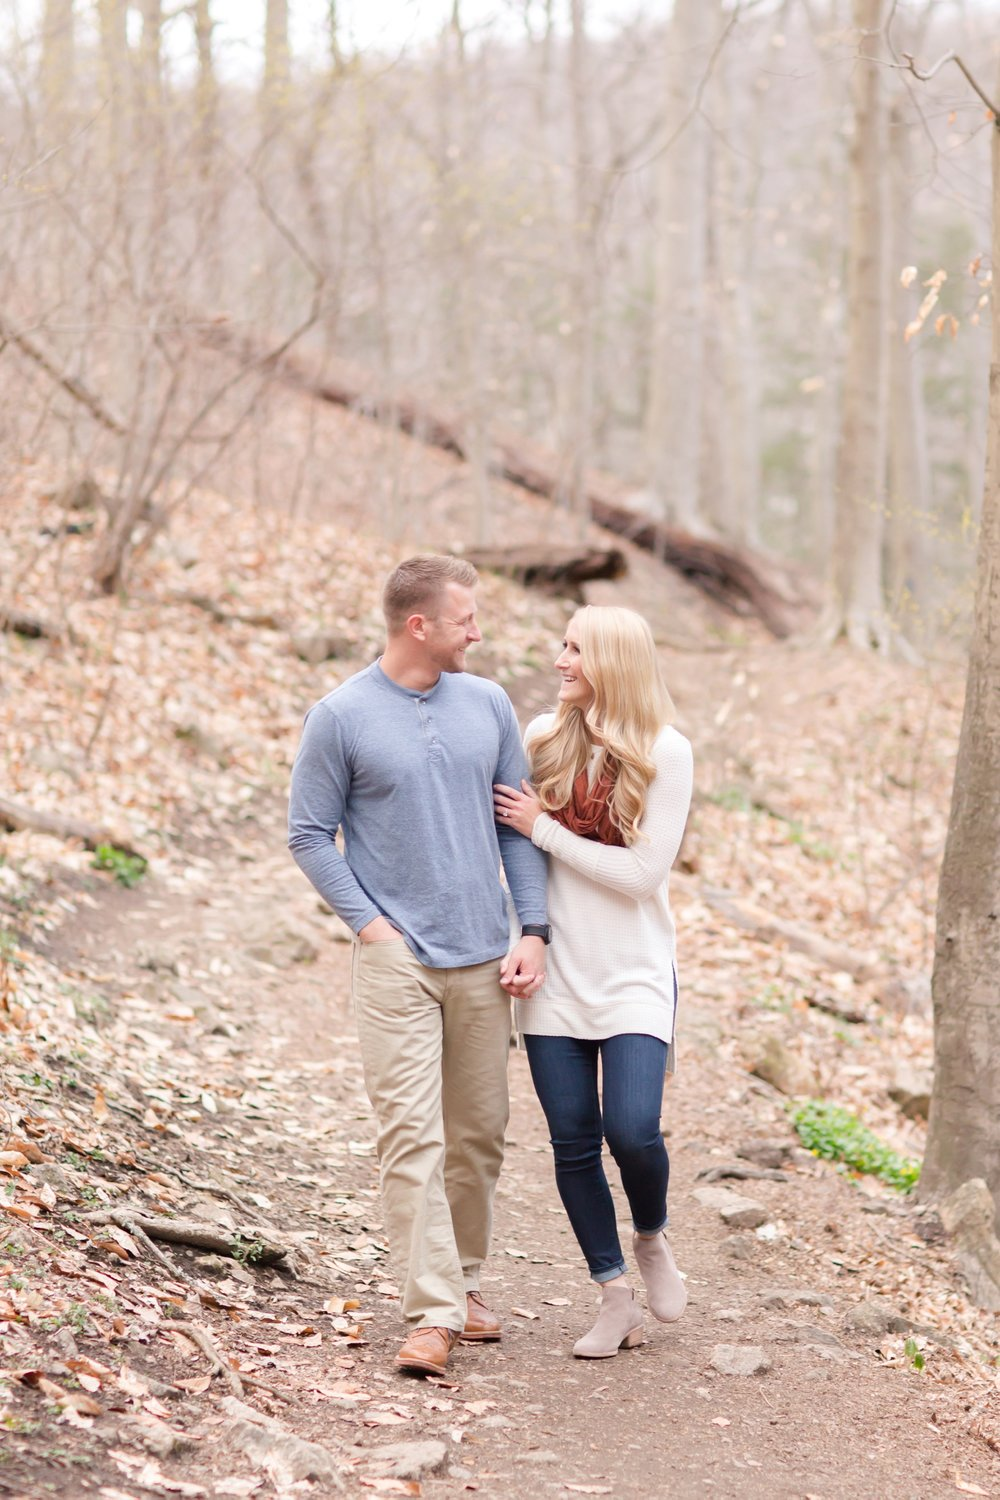 Kristine & Joe Engagement-307_anna grace photography baltimore maryland engagement and wedding photographer patapsco state park engagement photo.jpg